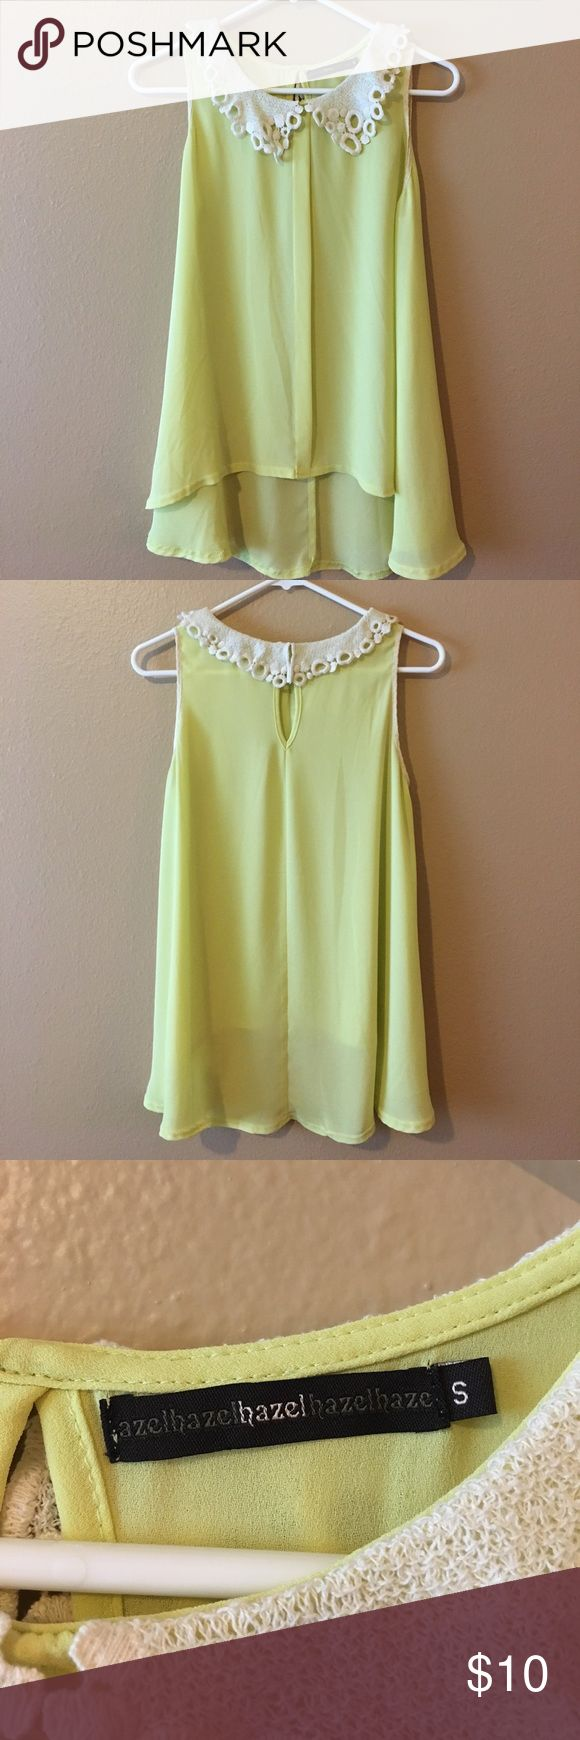 Bright yellow tank top in size small Bright yellow tank top in size small. Worn a handful of times. Perfect for Spring and Summer! Brand is Hazel. Hazel Tops Tank Tops